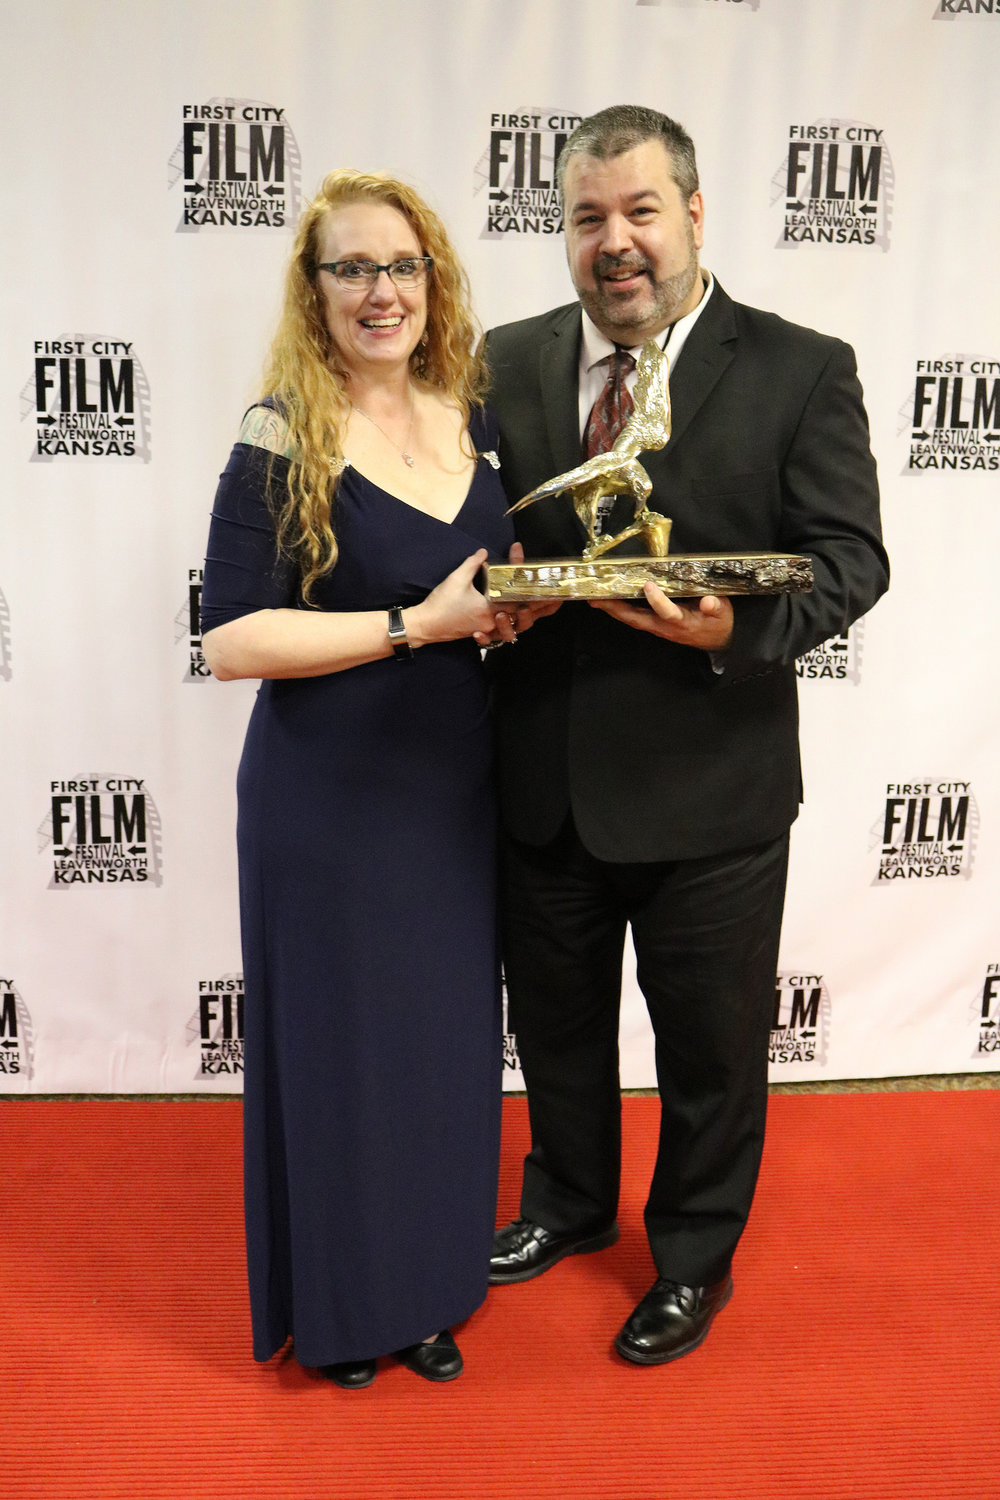 First City Film Festival Director Tisha Swart-Entwistle poses with the 2018 Andy Entwistle Spirit Award Recipient Eric Willis during the awards ceremony March 23, 2018 at the Riverfront Community Center in Leavenworth, Kan.